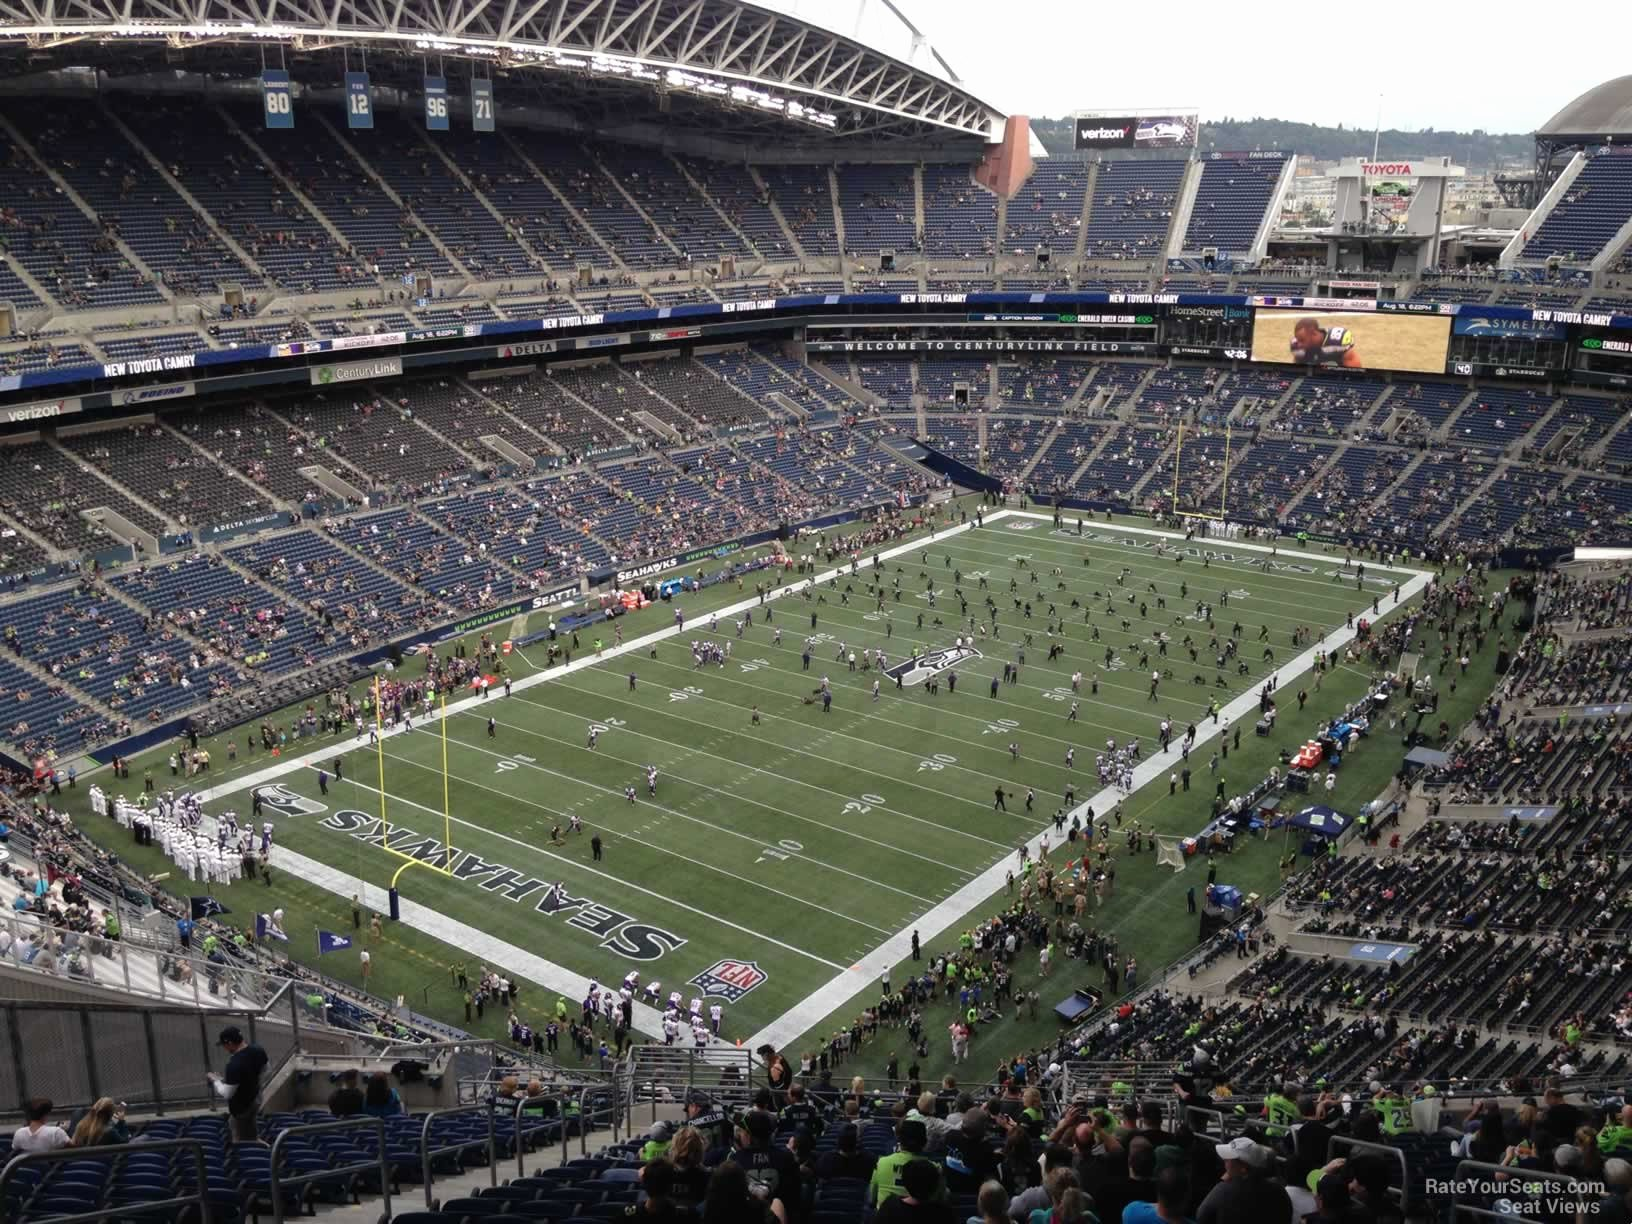 Centurylink Seating Chart with Rows and Seat Numbers Fresh Centurylink Field Section 344 Seattle Seahawks